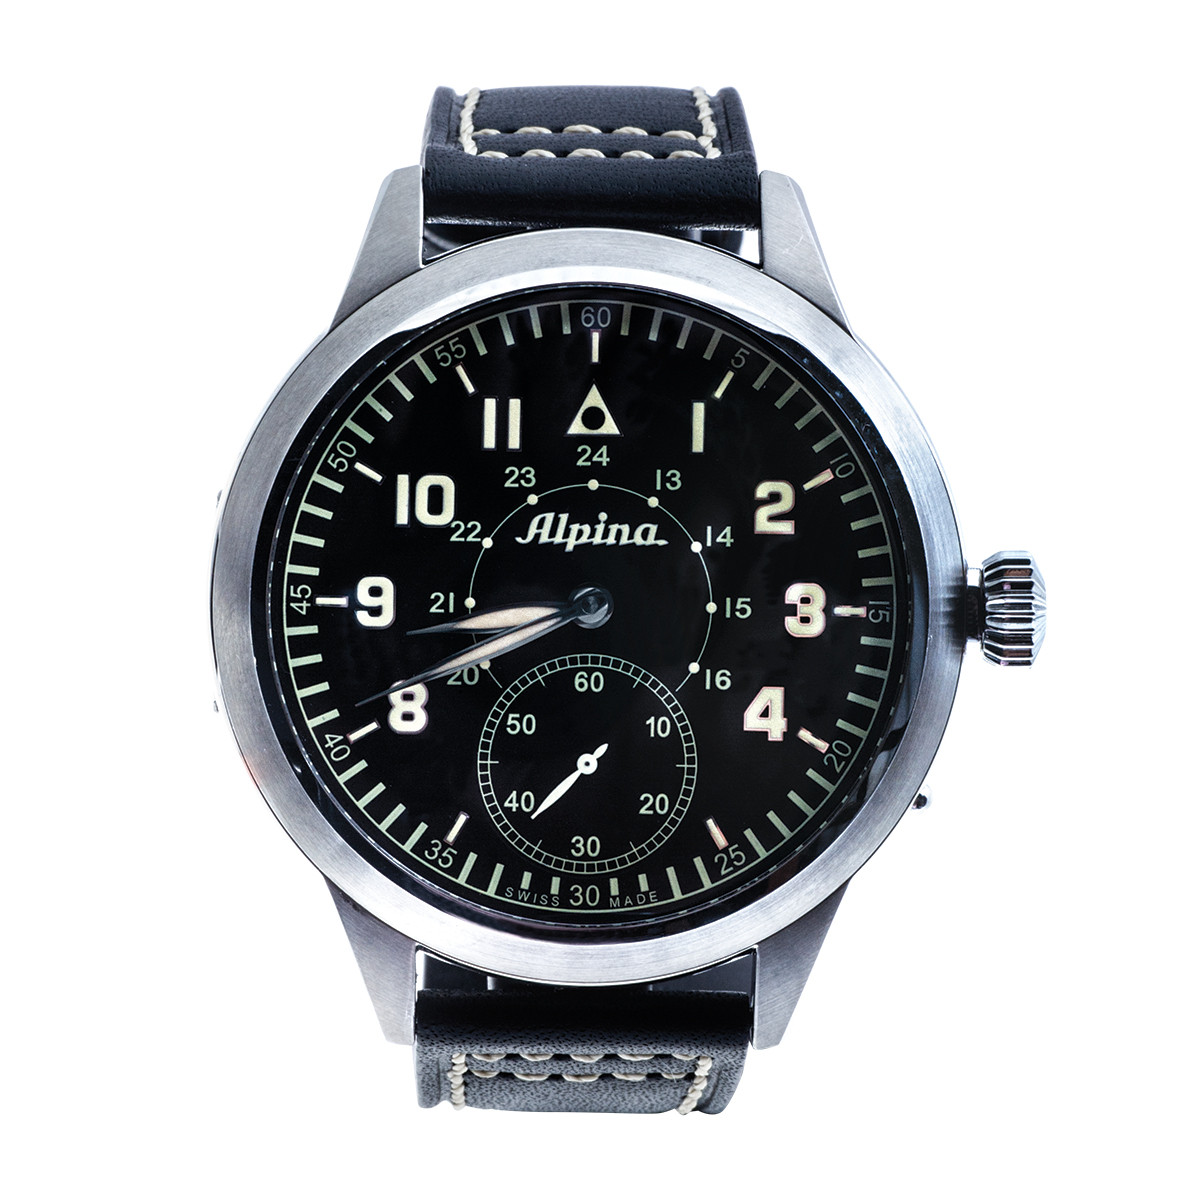 Preowned Alpina Pilot Heritage Limited Edition